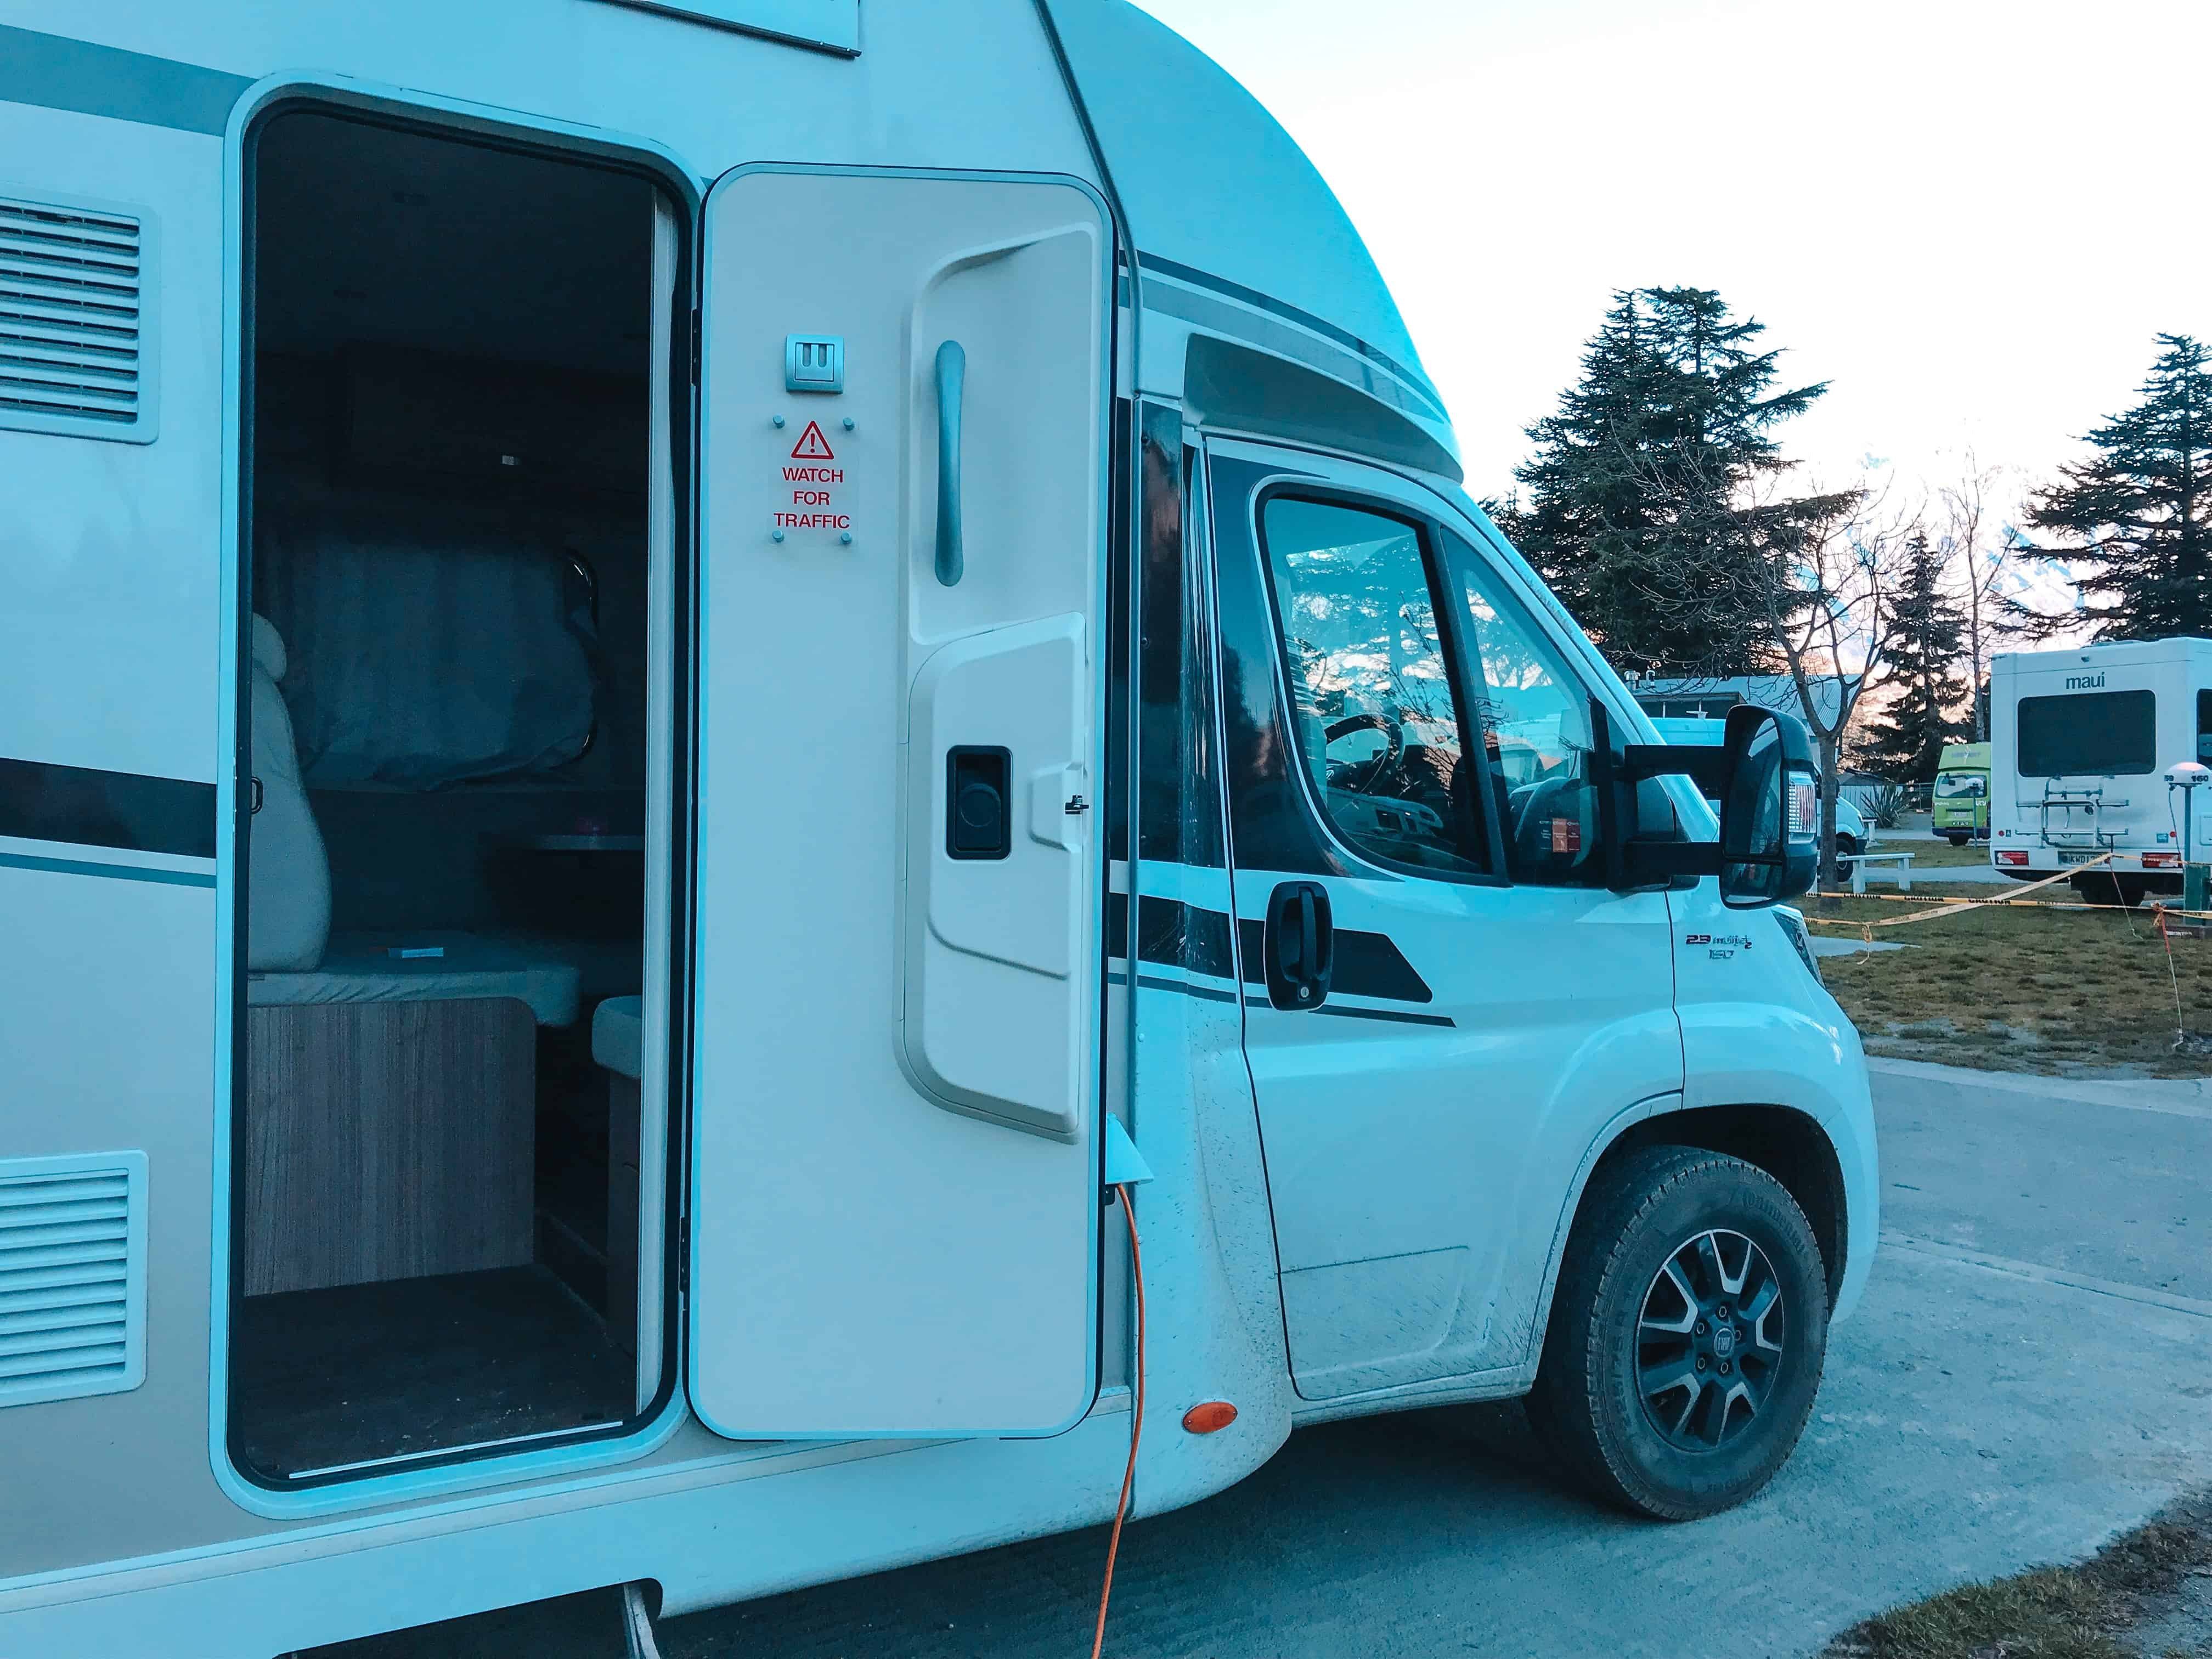 Wilderness Motorhomes van parked at Queenstown caravan park